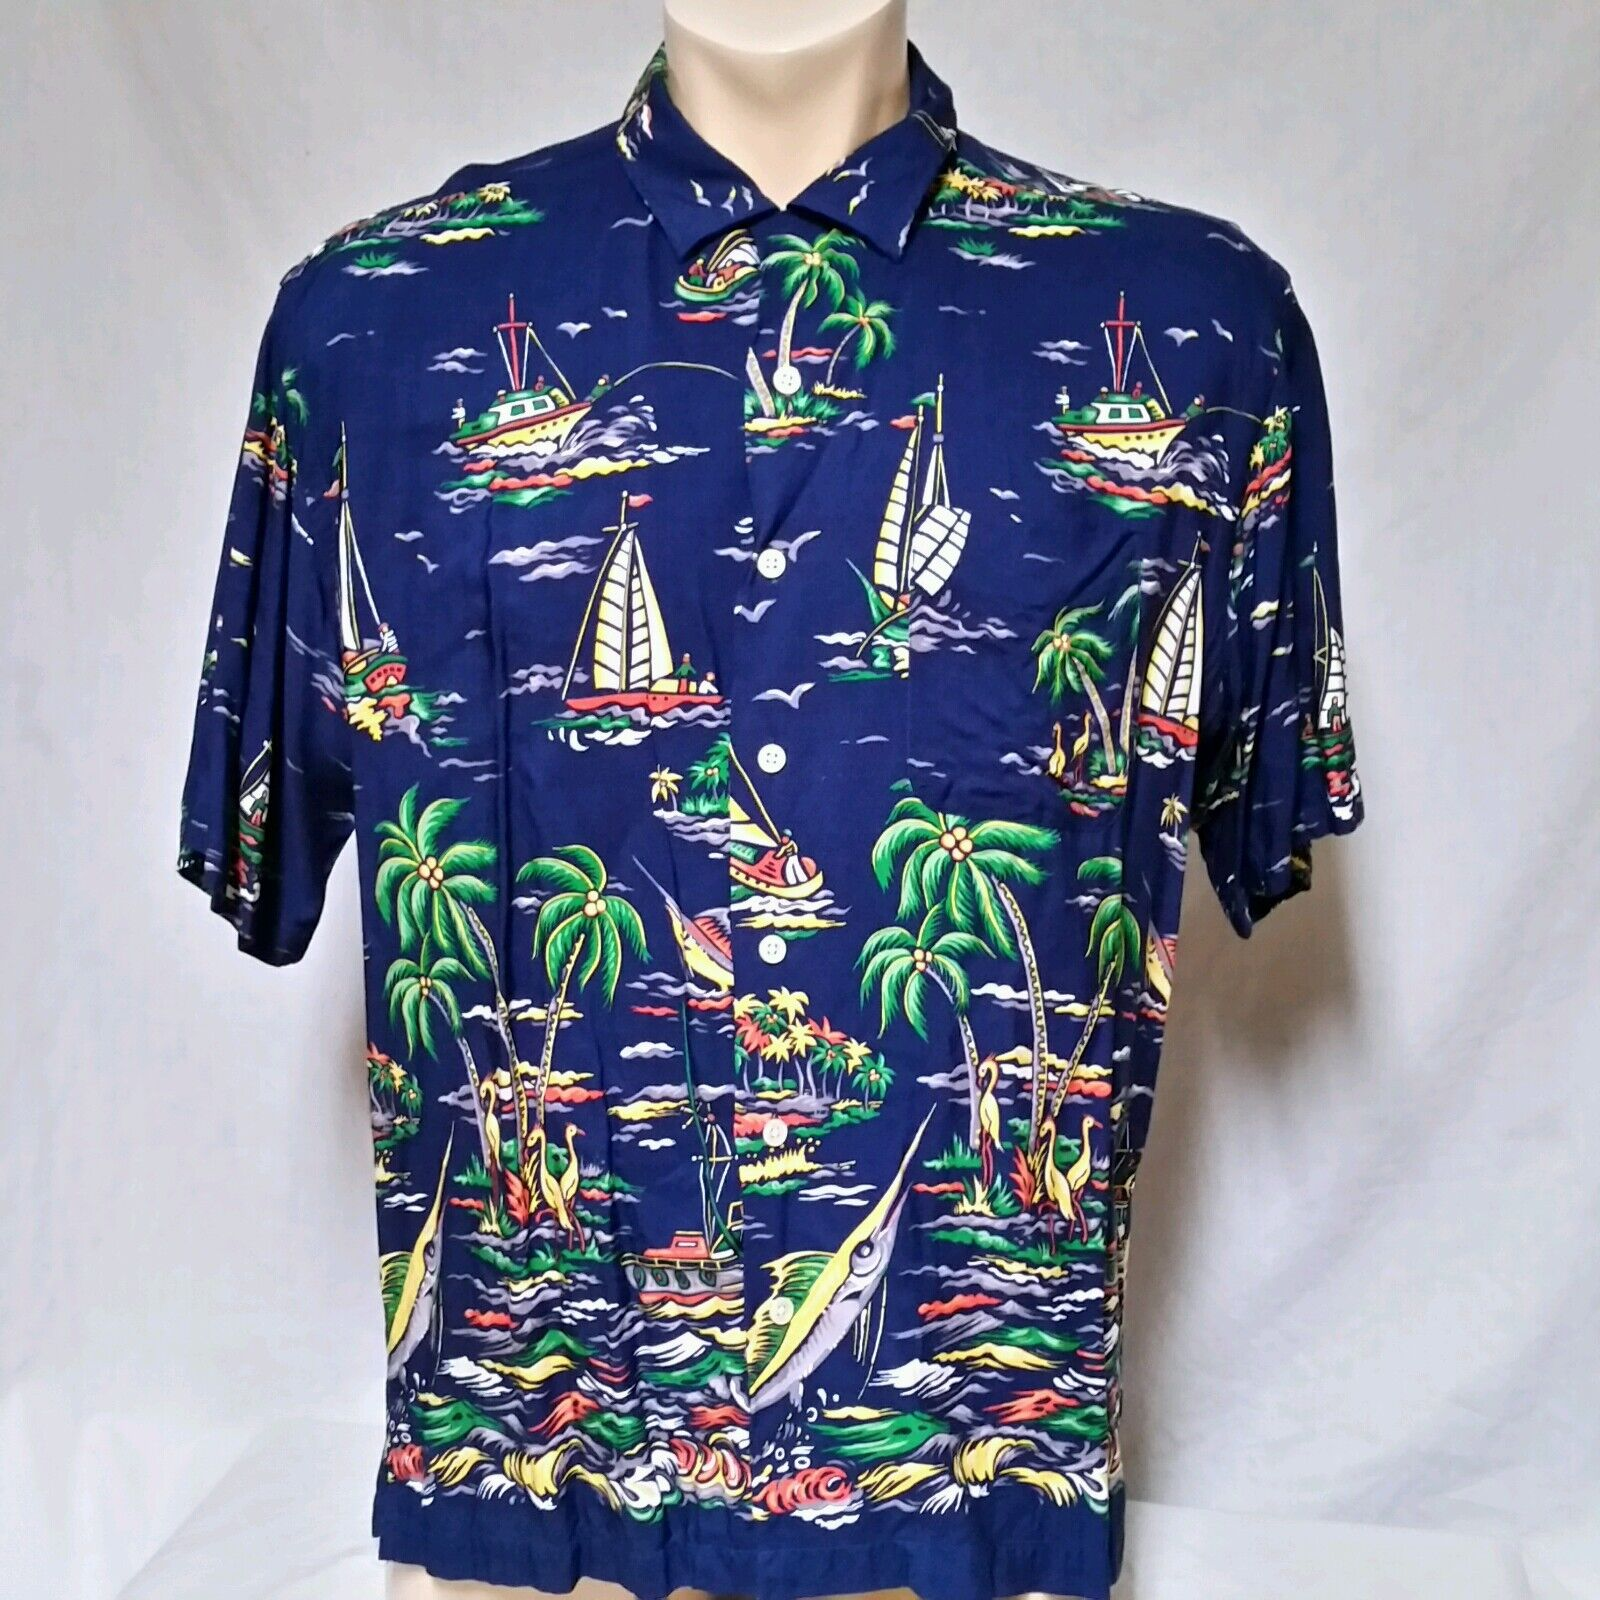 VTG Polo Ralph Lauren Shirt 90's Sailboat Riviera Bear Stadium 92 Yacht RLX XL